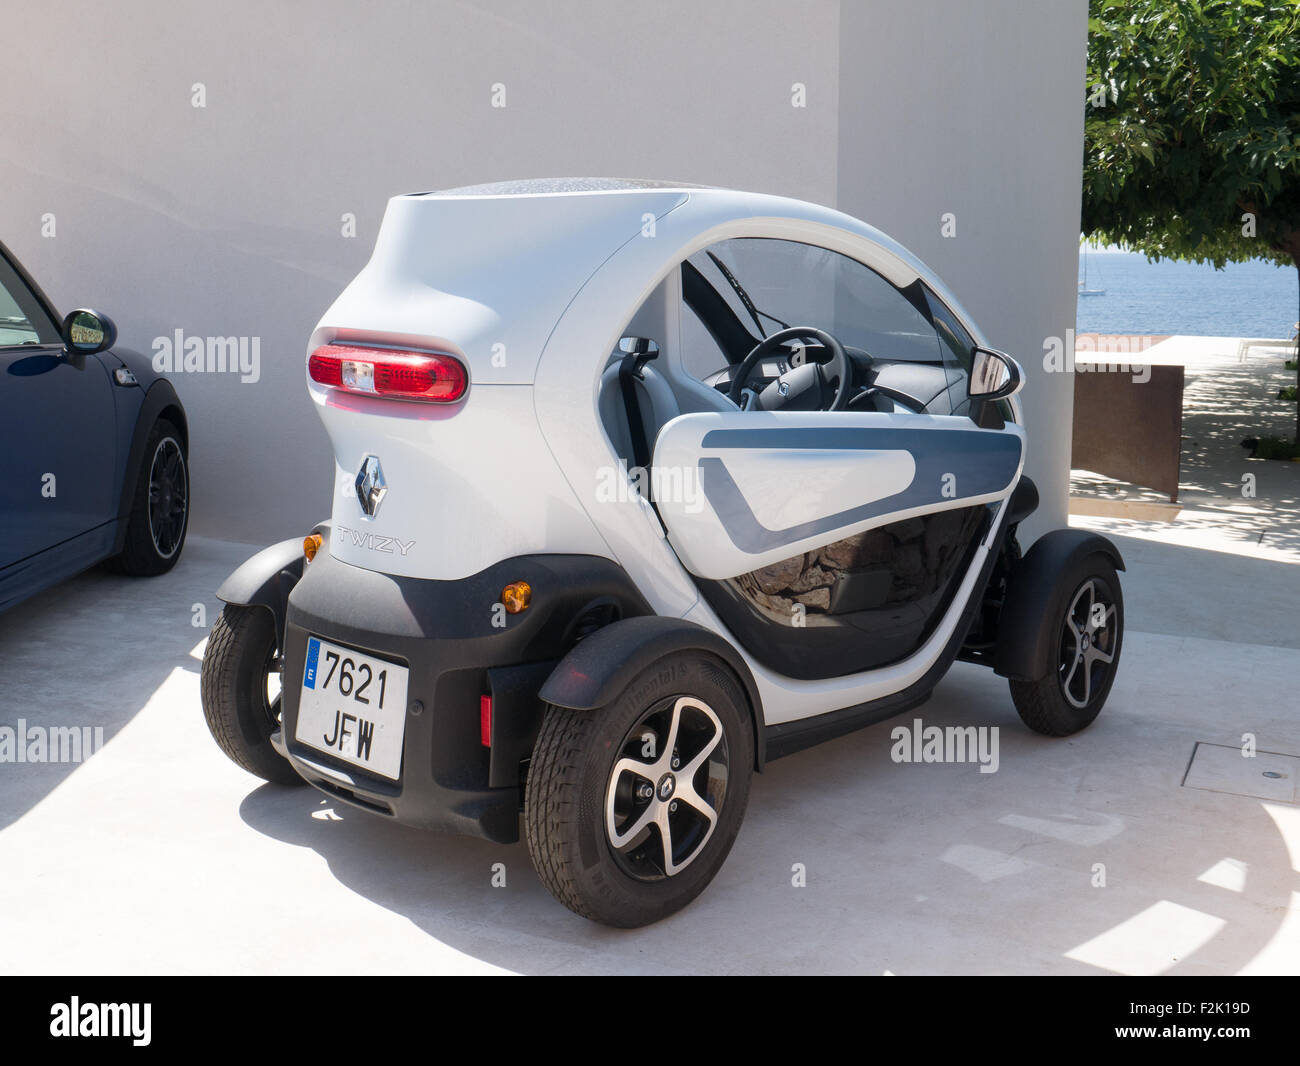 renault twizy elektroauto stockfoto bild 87699289 alamy. Black Bedroom Furniture Sets. Home Design Ideas